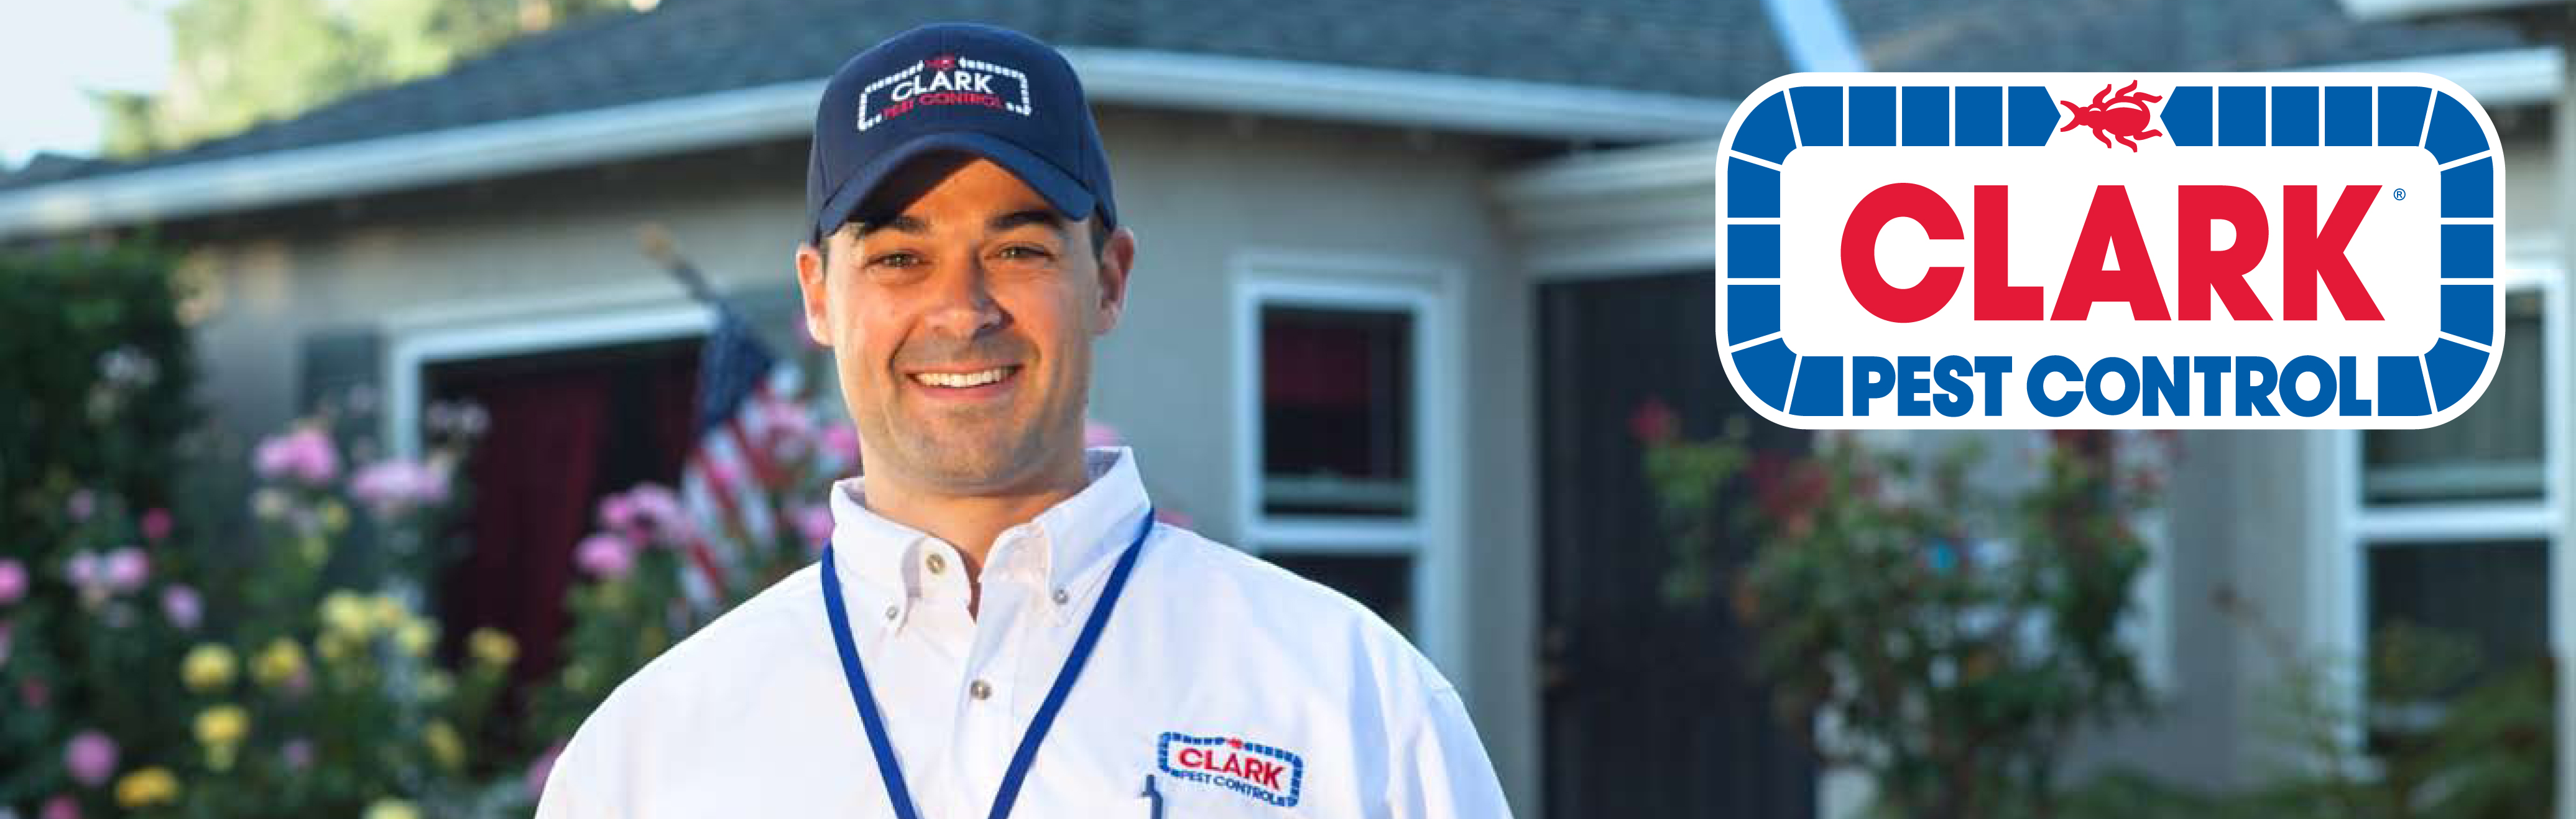 Clark Pest Control reviews | Home & Garden at 12300 Locksley Lane - Auburn CA